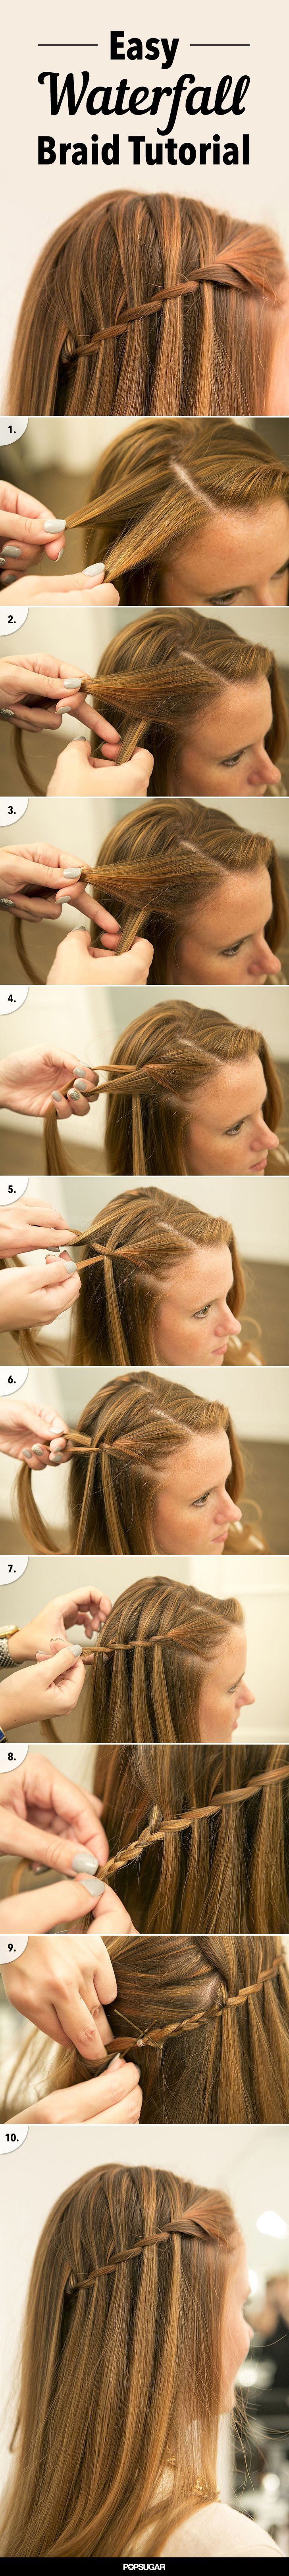 The Waterfall Plait Tutorial You Are Going to Want to Pin